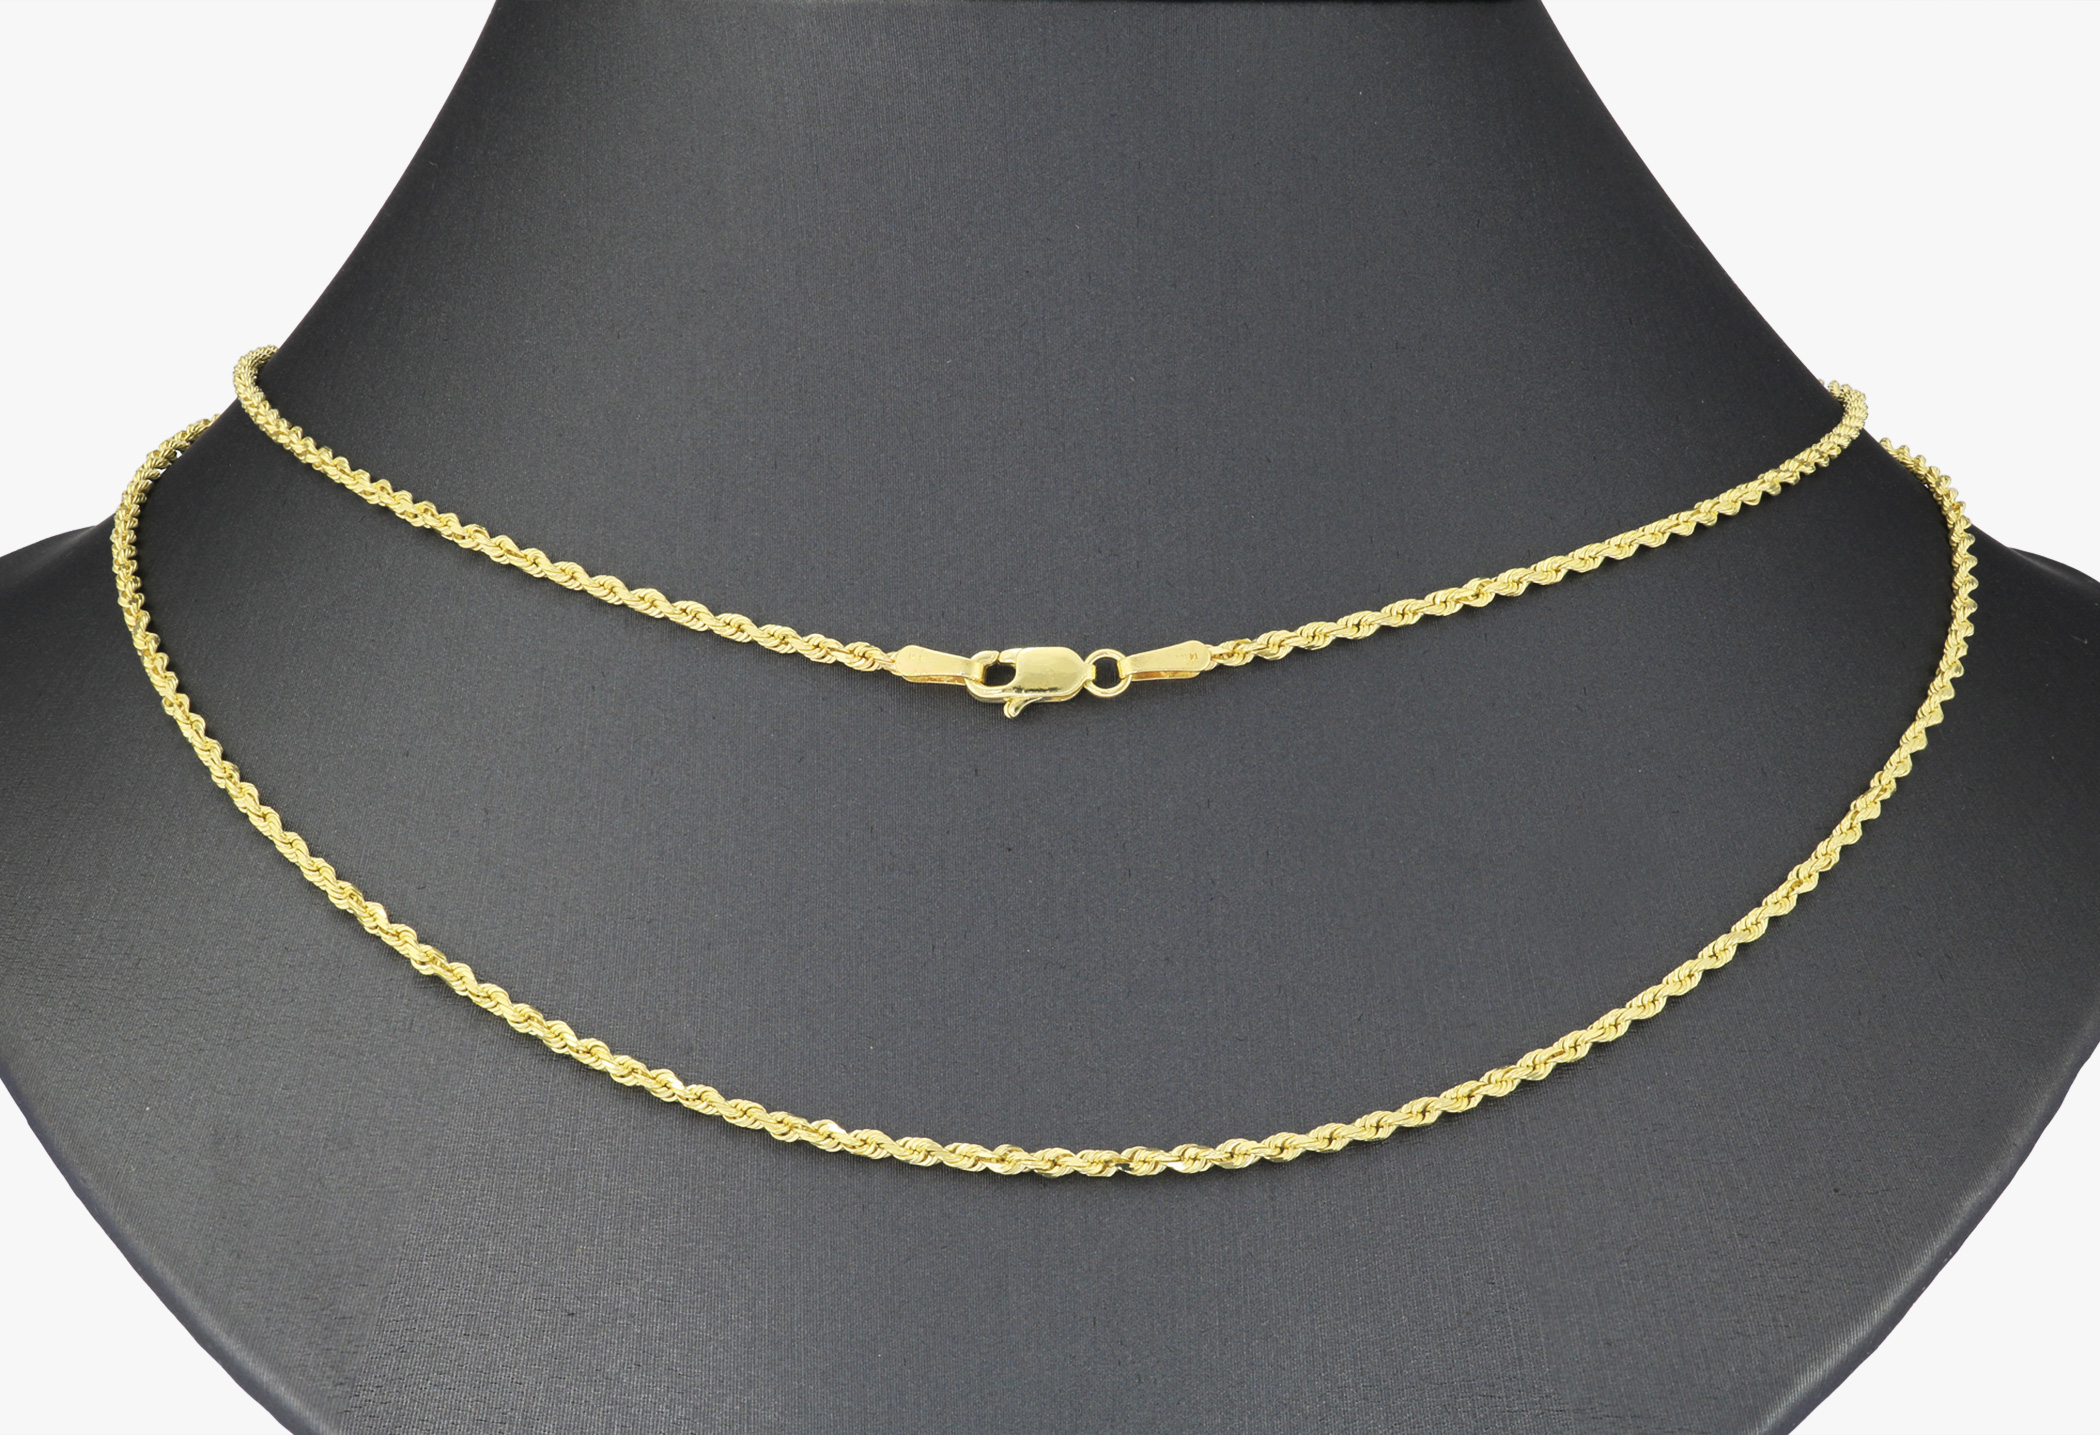 14K-Yellow-Gold-Solid-1-8mm-Diamond-Cut-Rope-Link-Chain-Pendant-Necklace-16-034-30-034 thumbnail 23